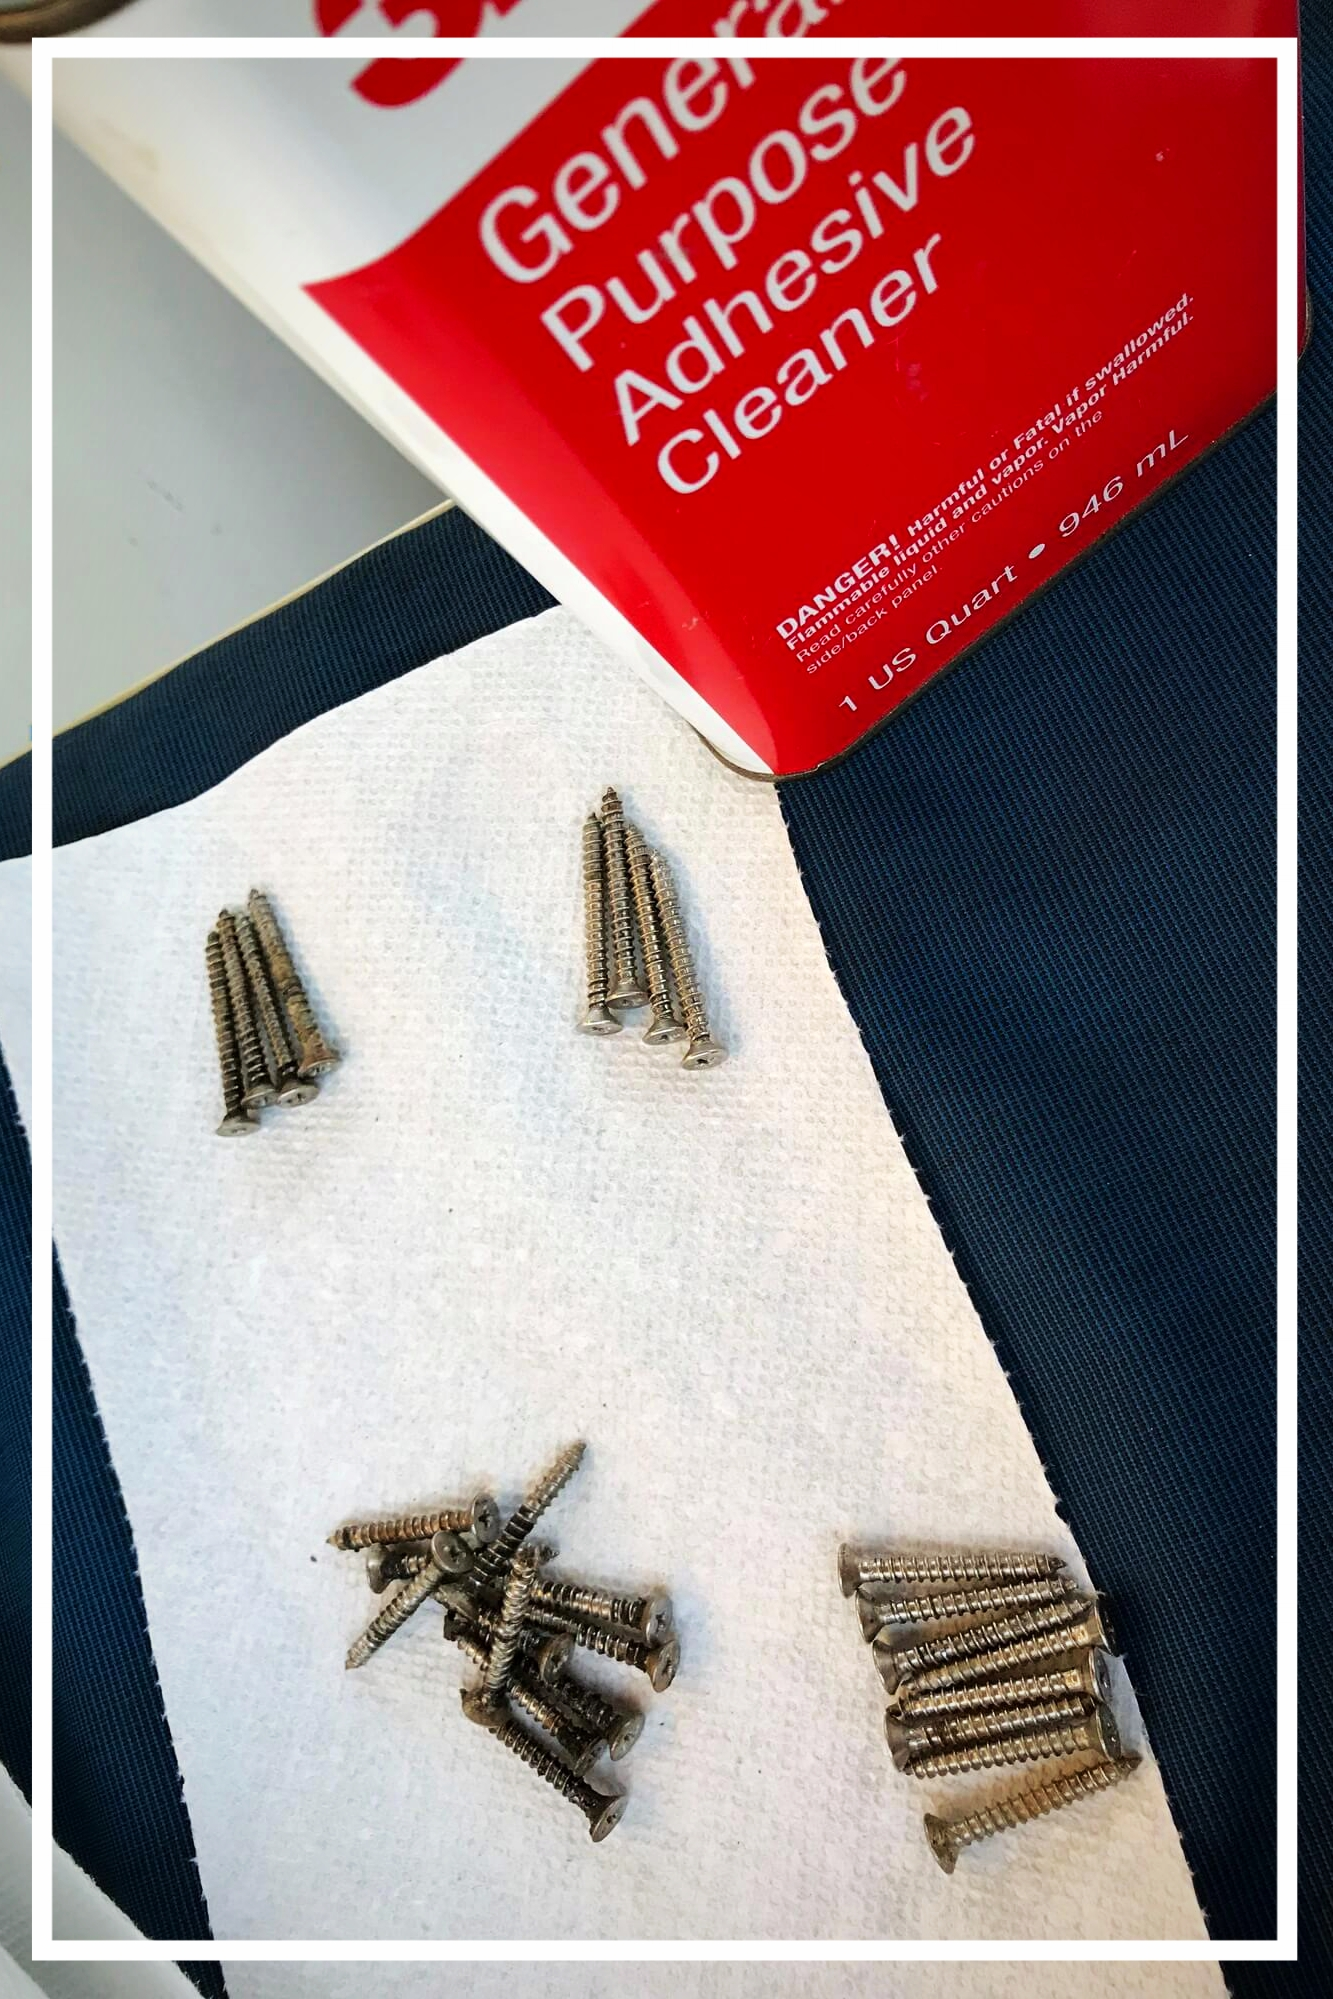 Cleaned screws for windows